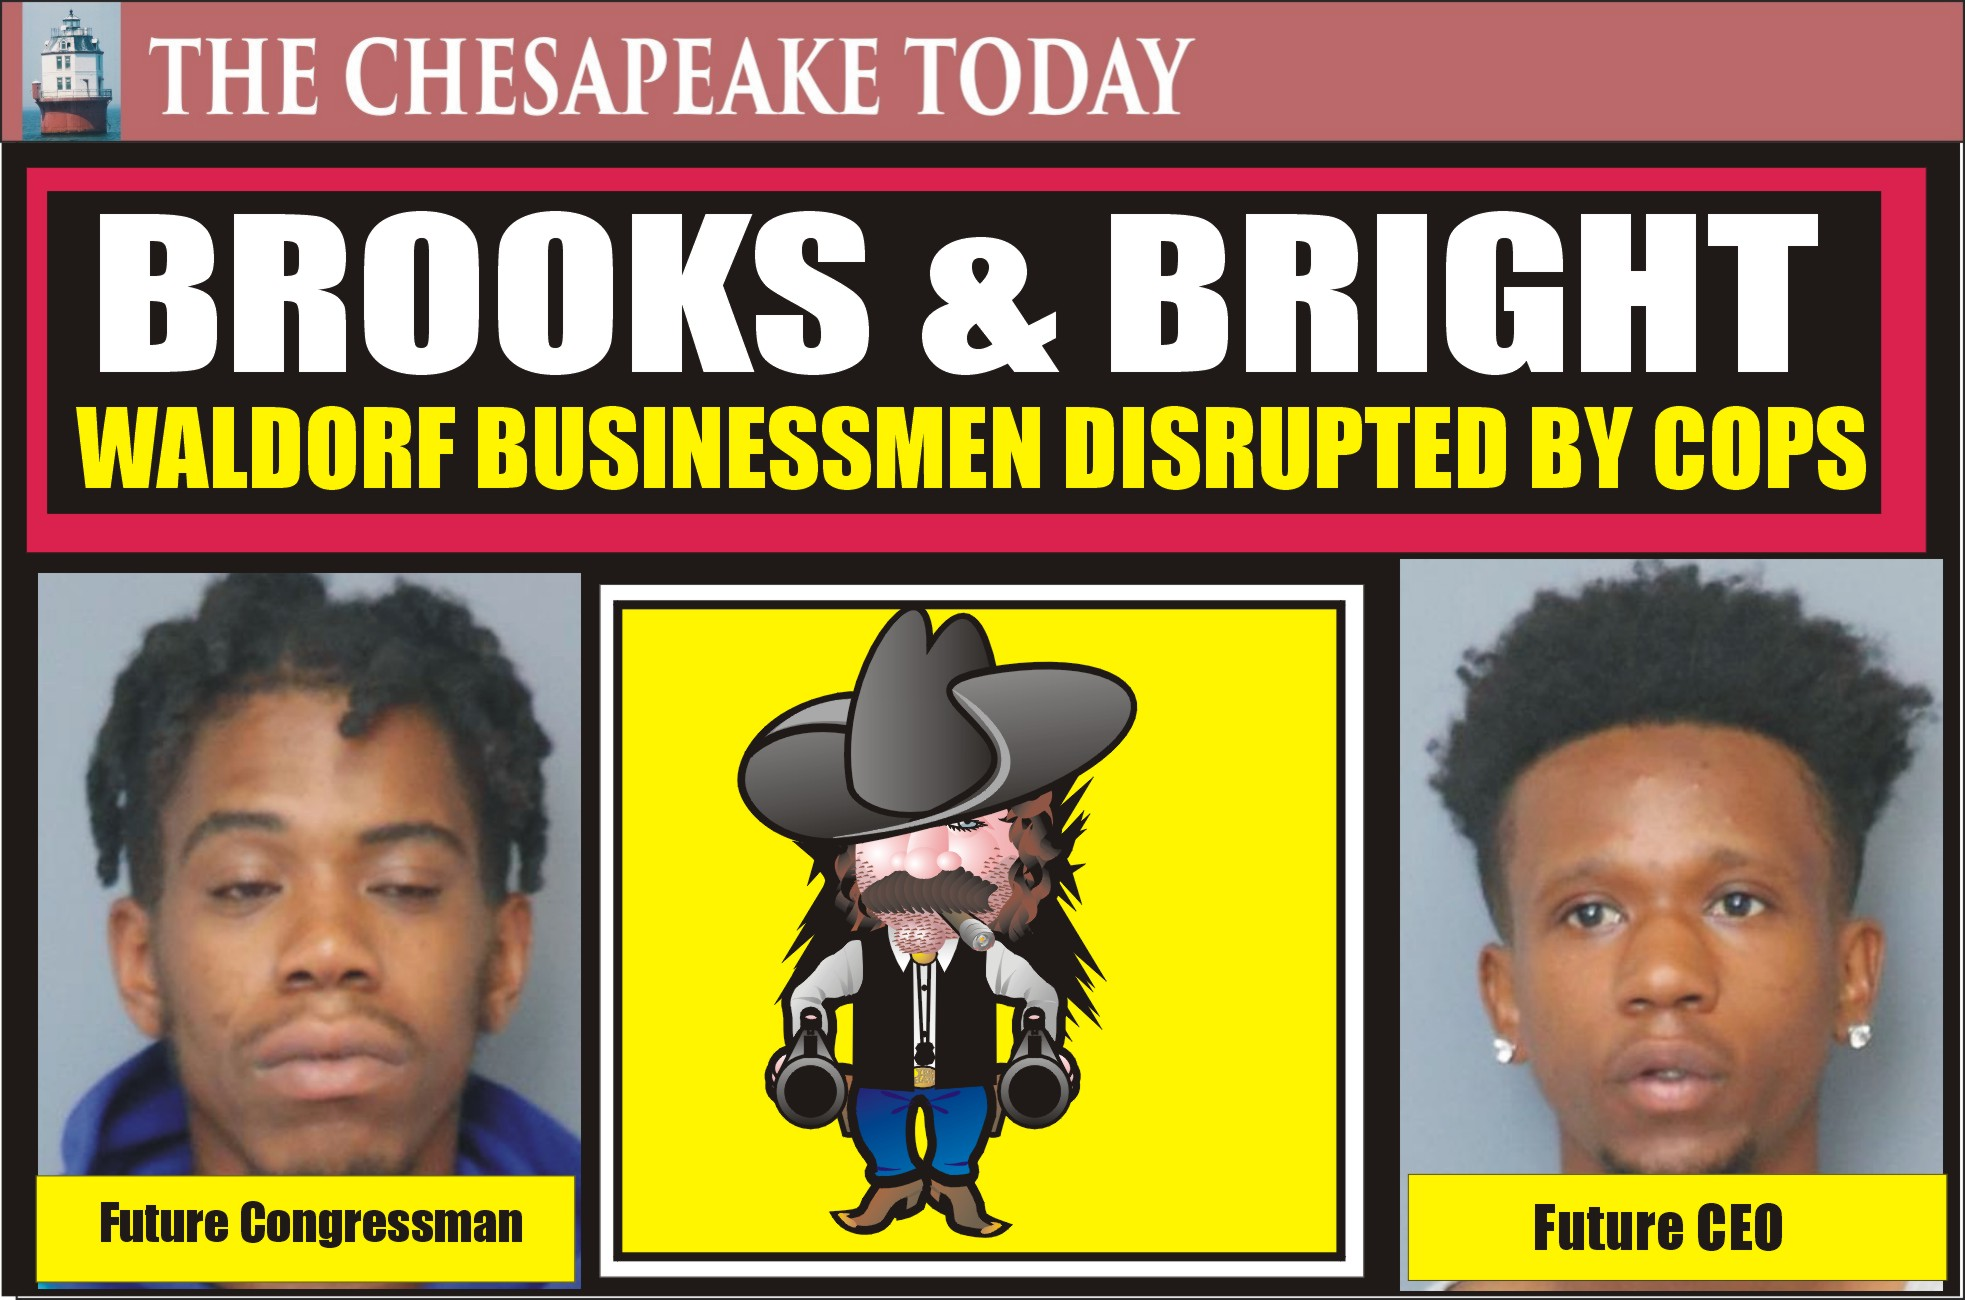 CHARLES SHERIFF NEWS BEAT: Alleged spitting drug dealer Kaleb Brooks threatened to shoot dog; Bright pal showed up while cops were executing search warrant was packing heat